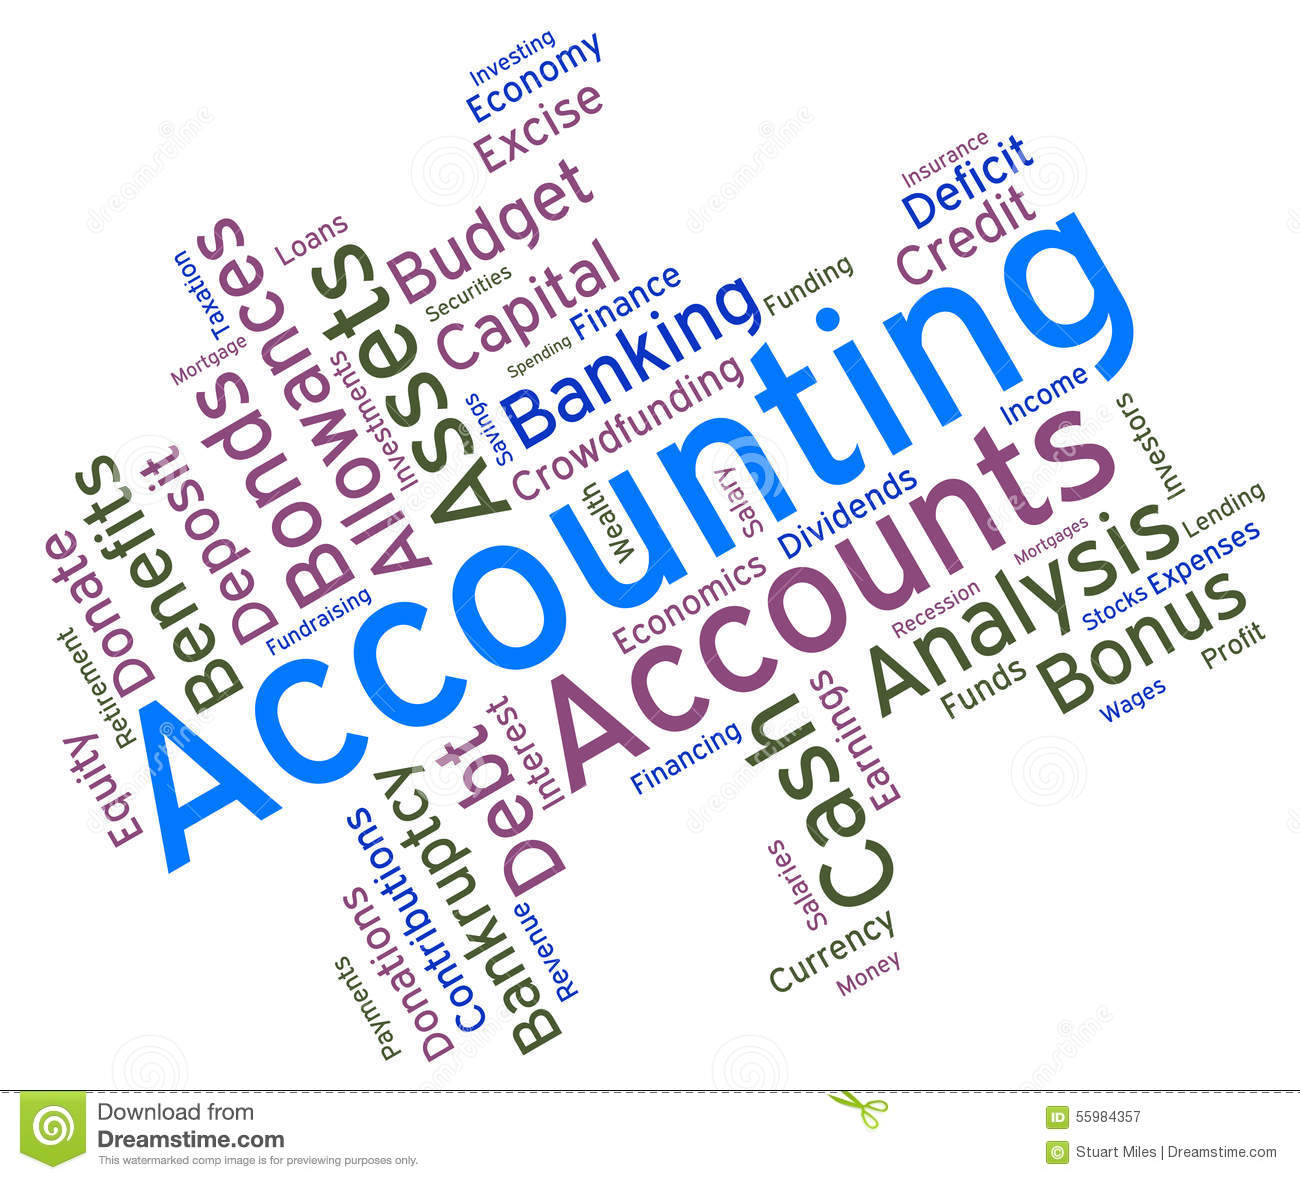 Accounting Words Represents Balancing The Books And